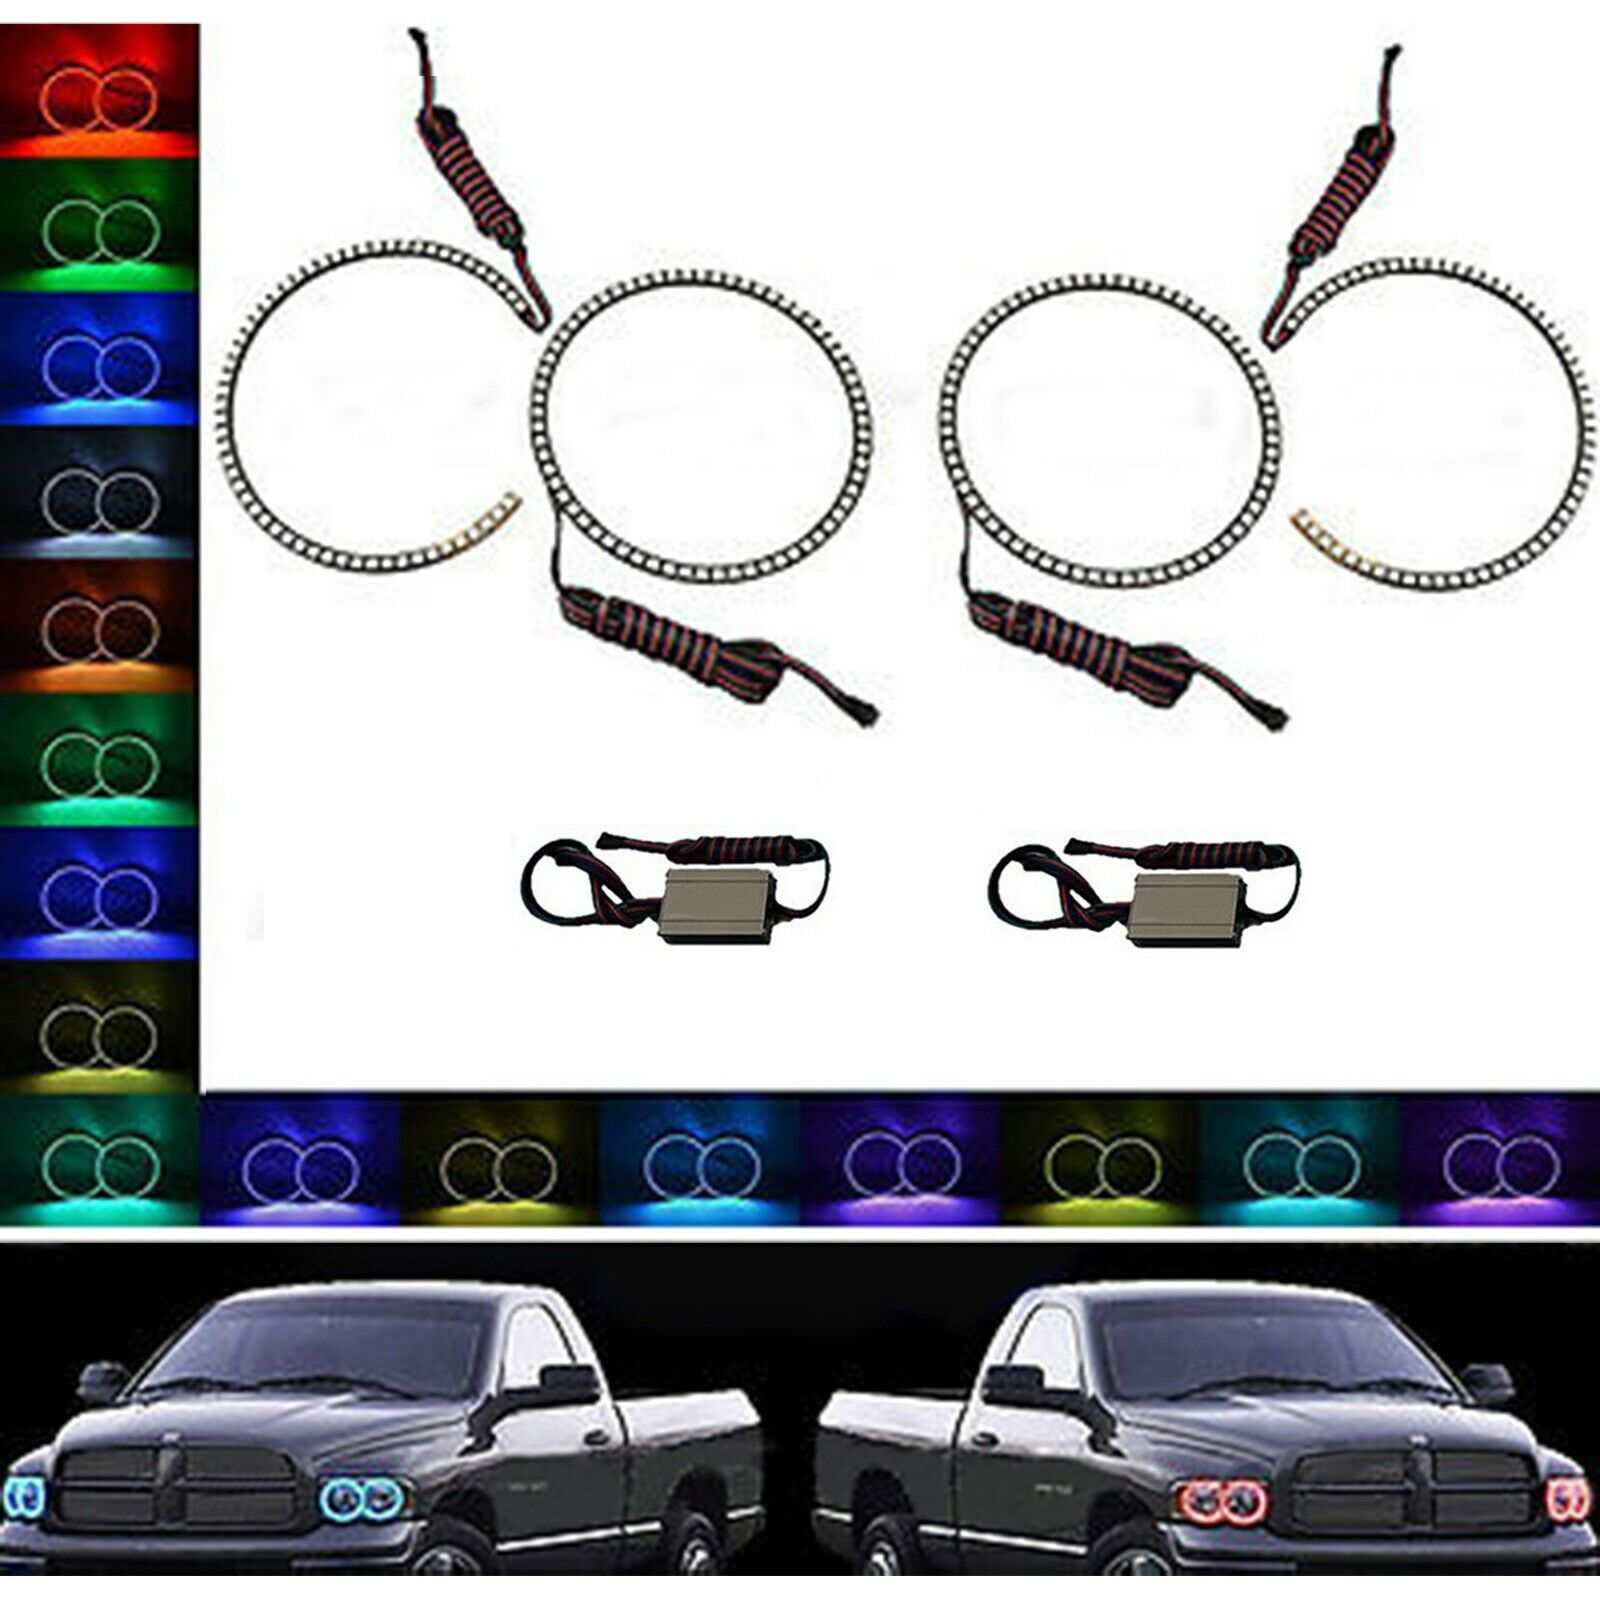 Multi-Color Changing LED RGB Headlight Halo Ring Set For 02-05 Dodge Ram Sport